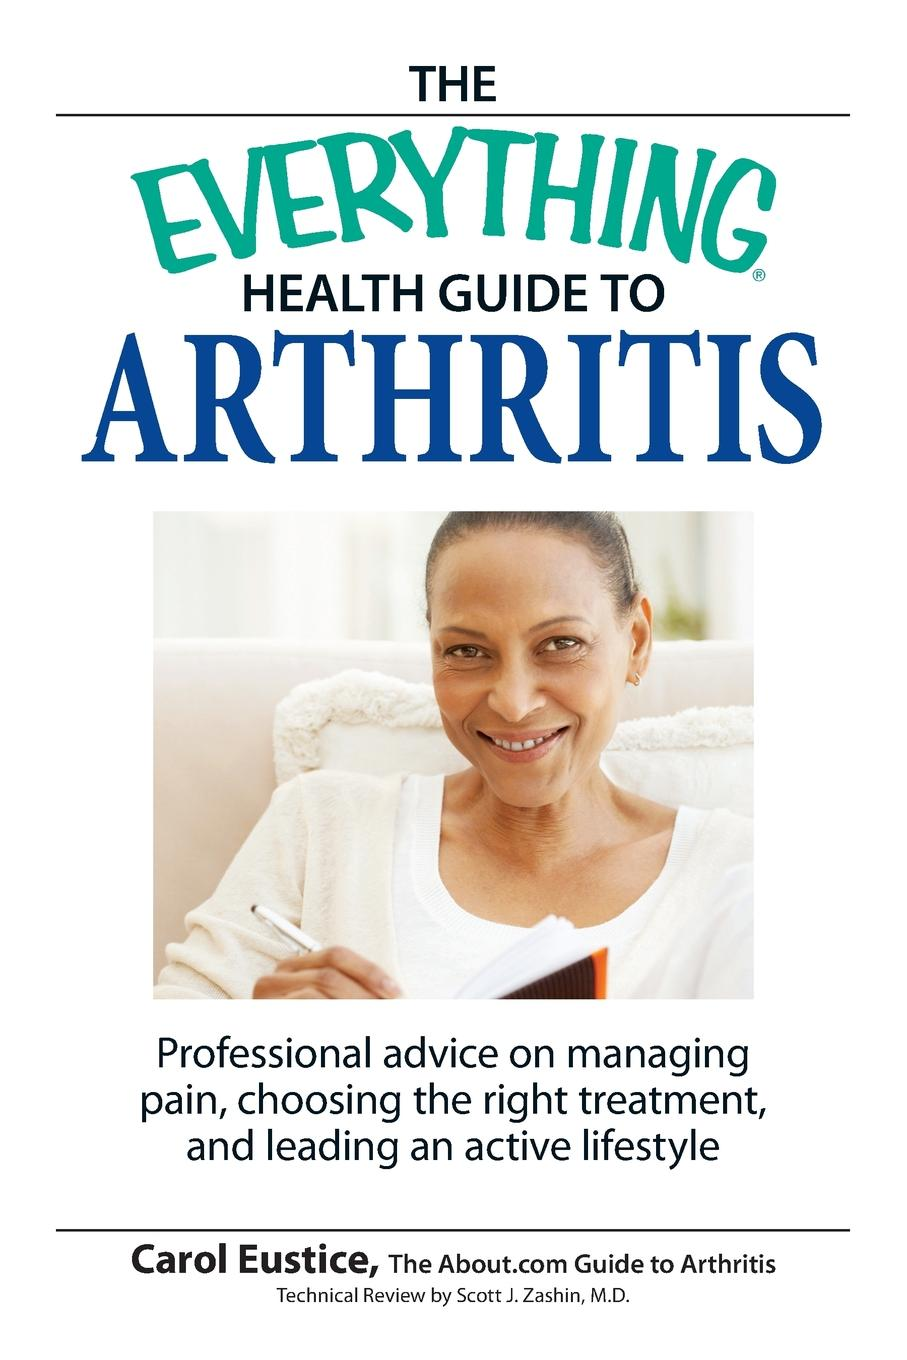 Carol Eustice The Everything Health Guide to Arthritis. Professional Advice on Managing Pain, Choosing the Right Treatment, and Leading an Active Lifestyle 100% positive health glucosamine chondroitin sulfate high strength joint support pain relaxation